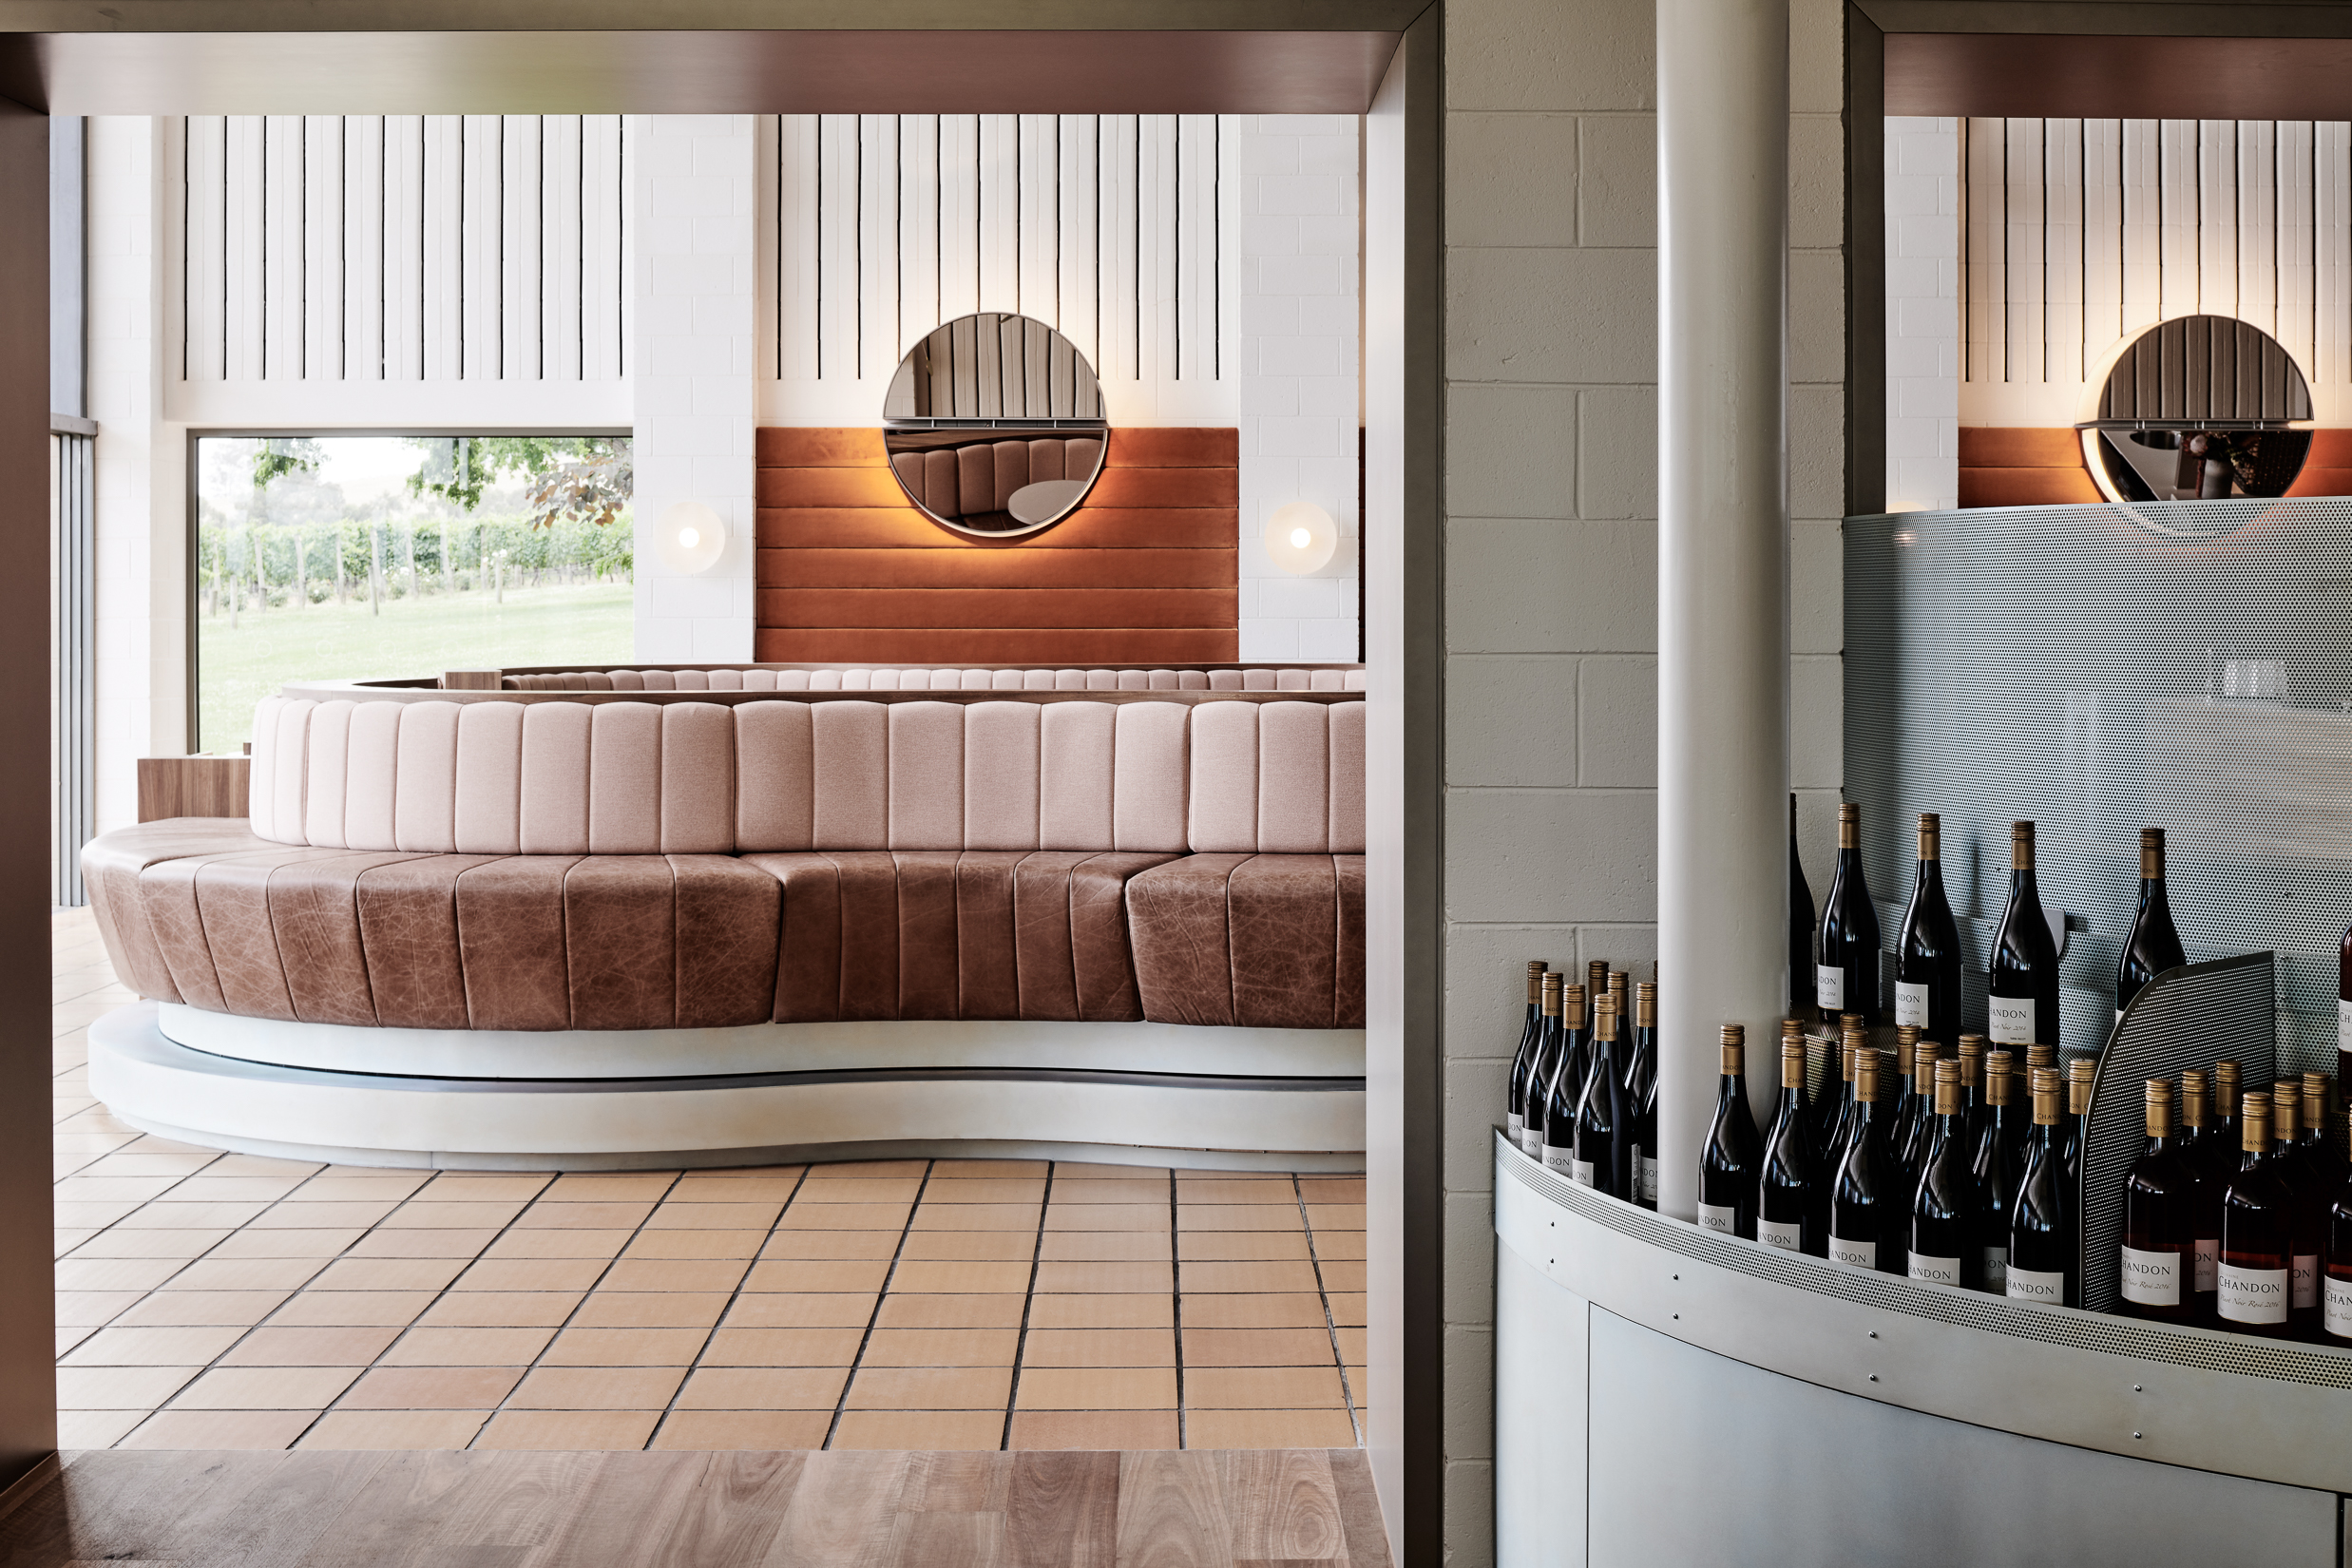 Gallery Of Chandon Australia By Foolscap Studio Local Australian Design And Interiors Yarra Valley, Vic Image 20